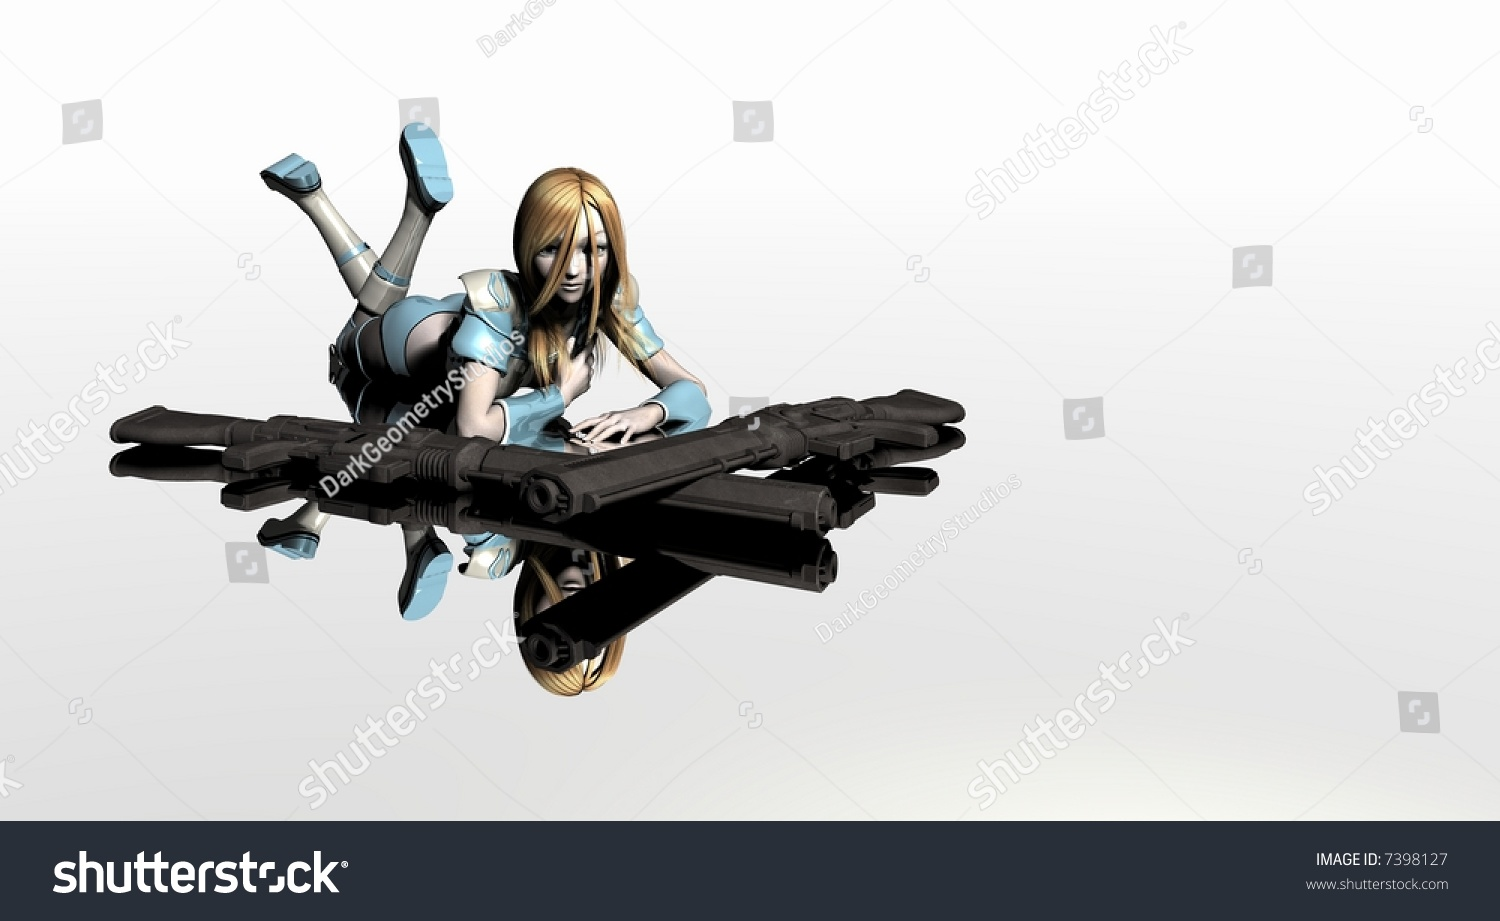 anime girl guns lying down stock illustration 7398127 - shutterstock